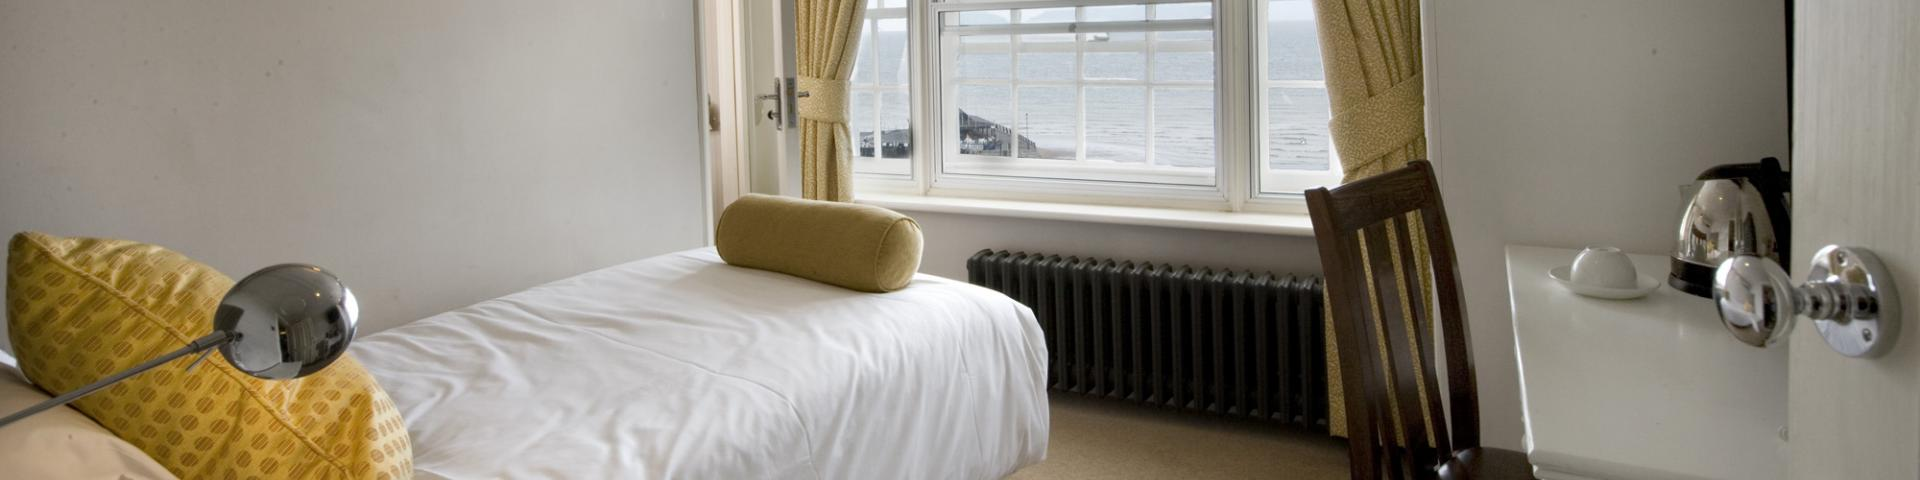 Royal Albion, Broadstairs - Single Room